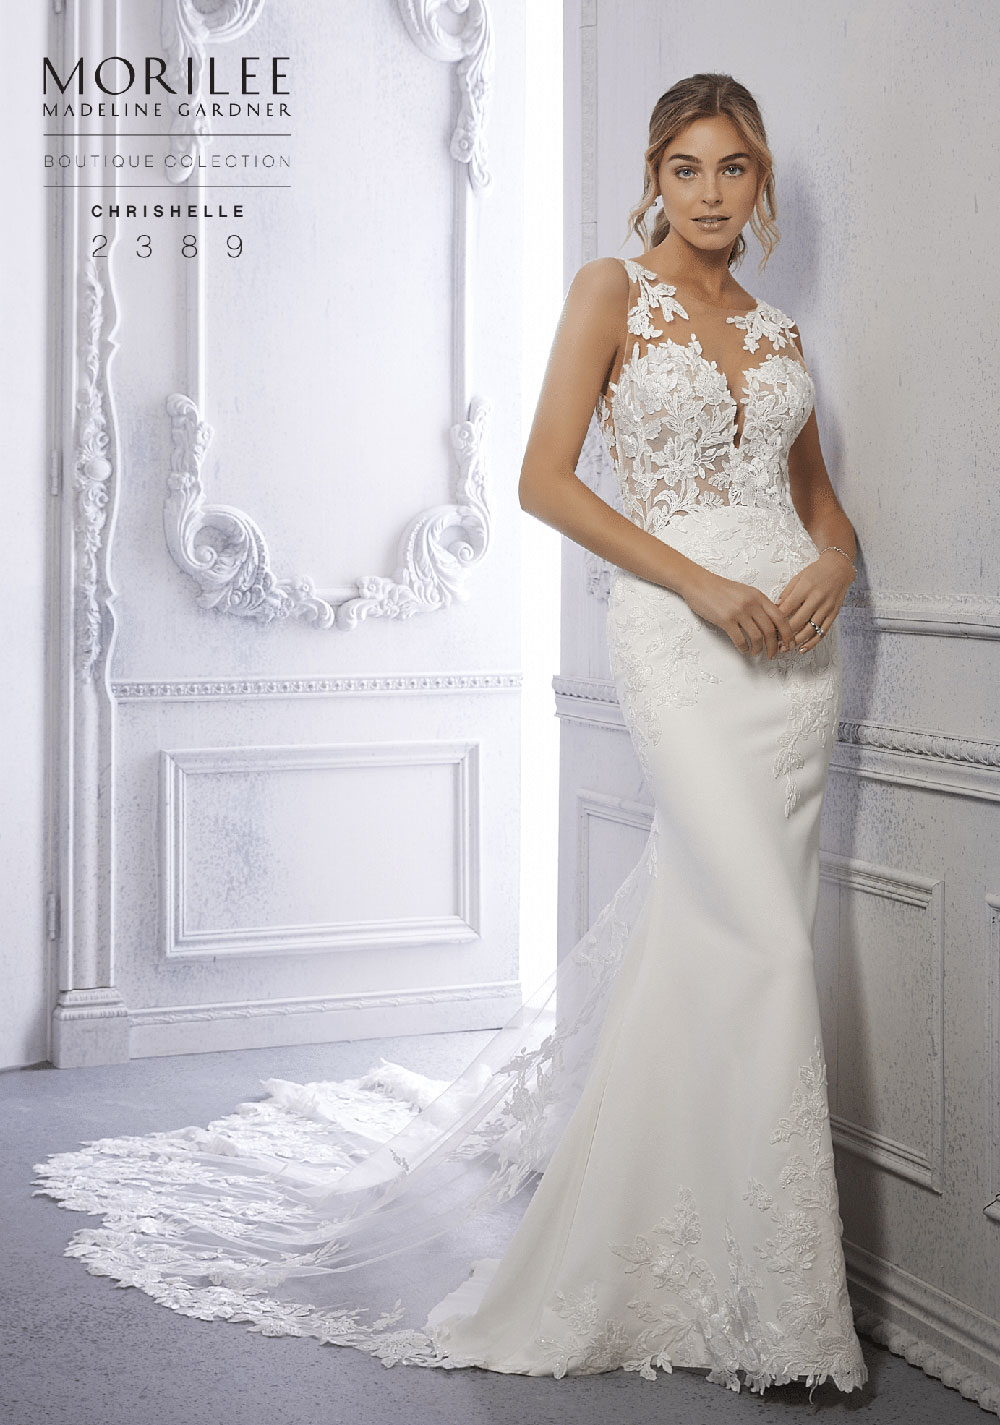 Morilee Boutique - Bridal Connection Stone Oak - Chrishelle Wedding Gown